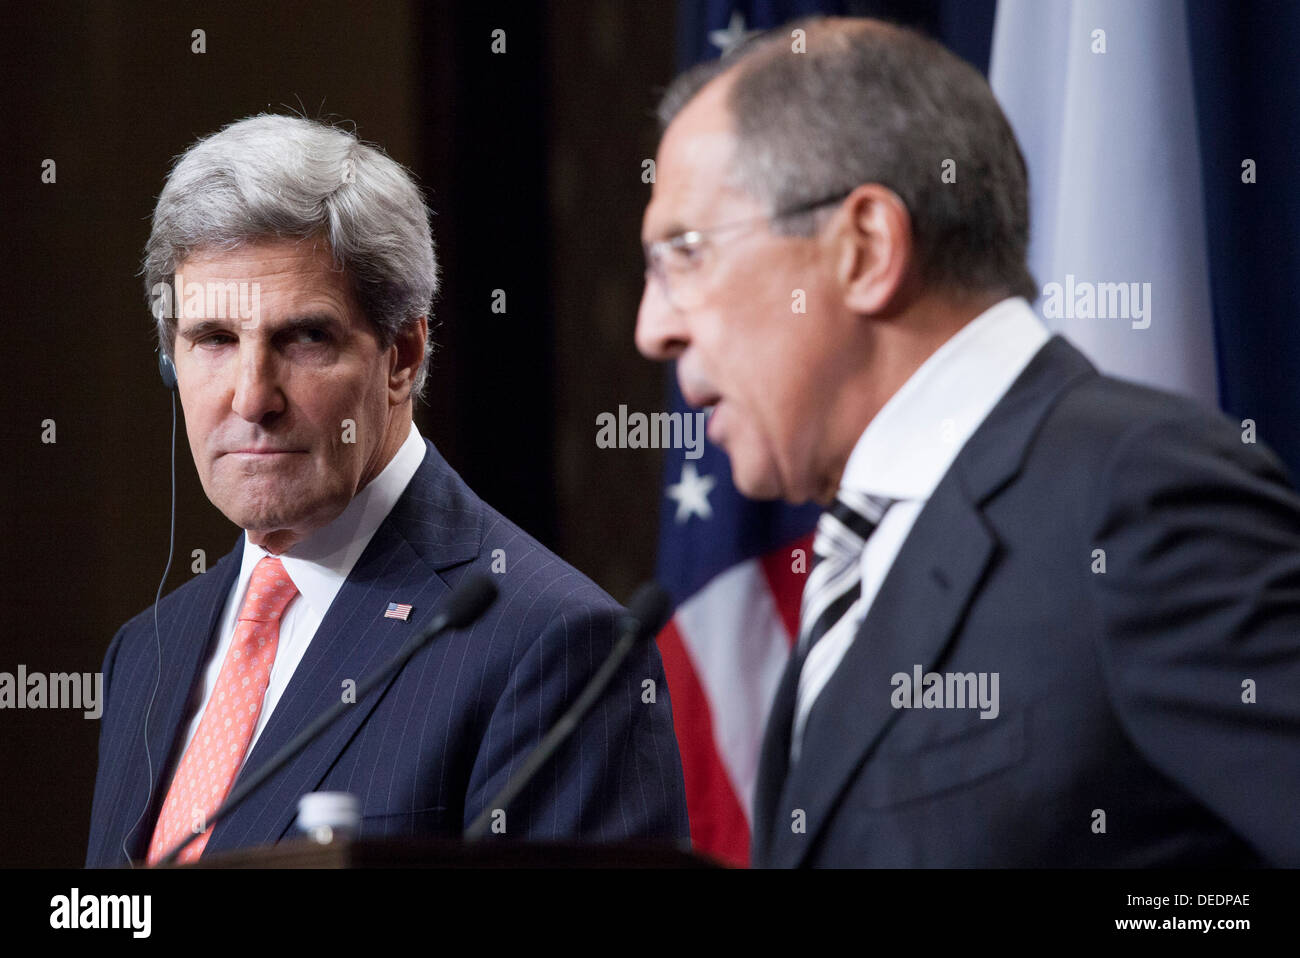 Secretary Kerry listens to Foreign Minister Lavrov - Stock Image